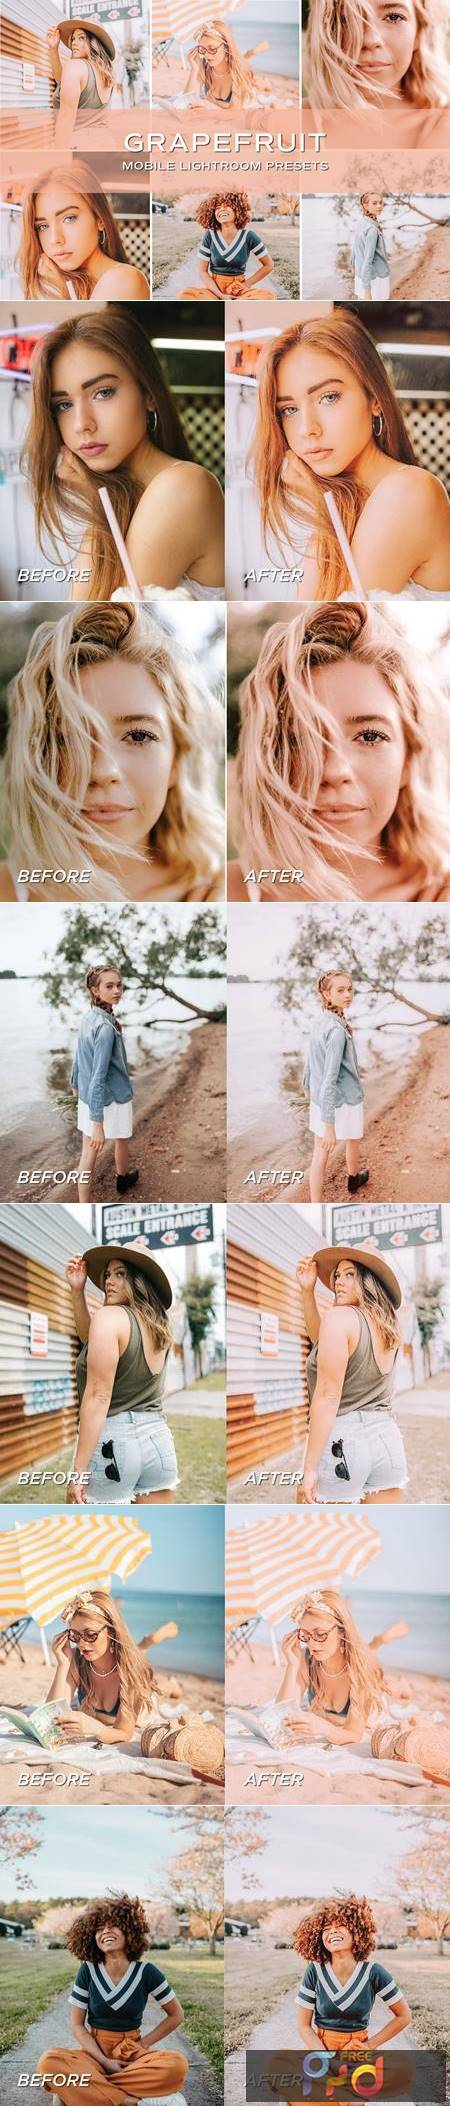 5 Peach Lightroom Presets 5701587 1